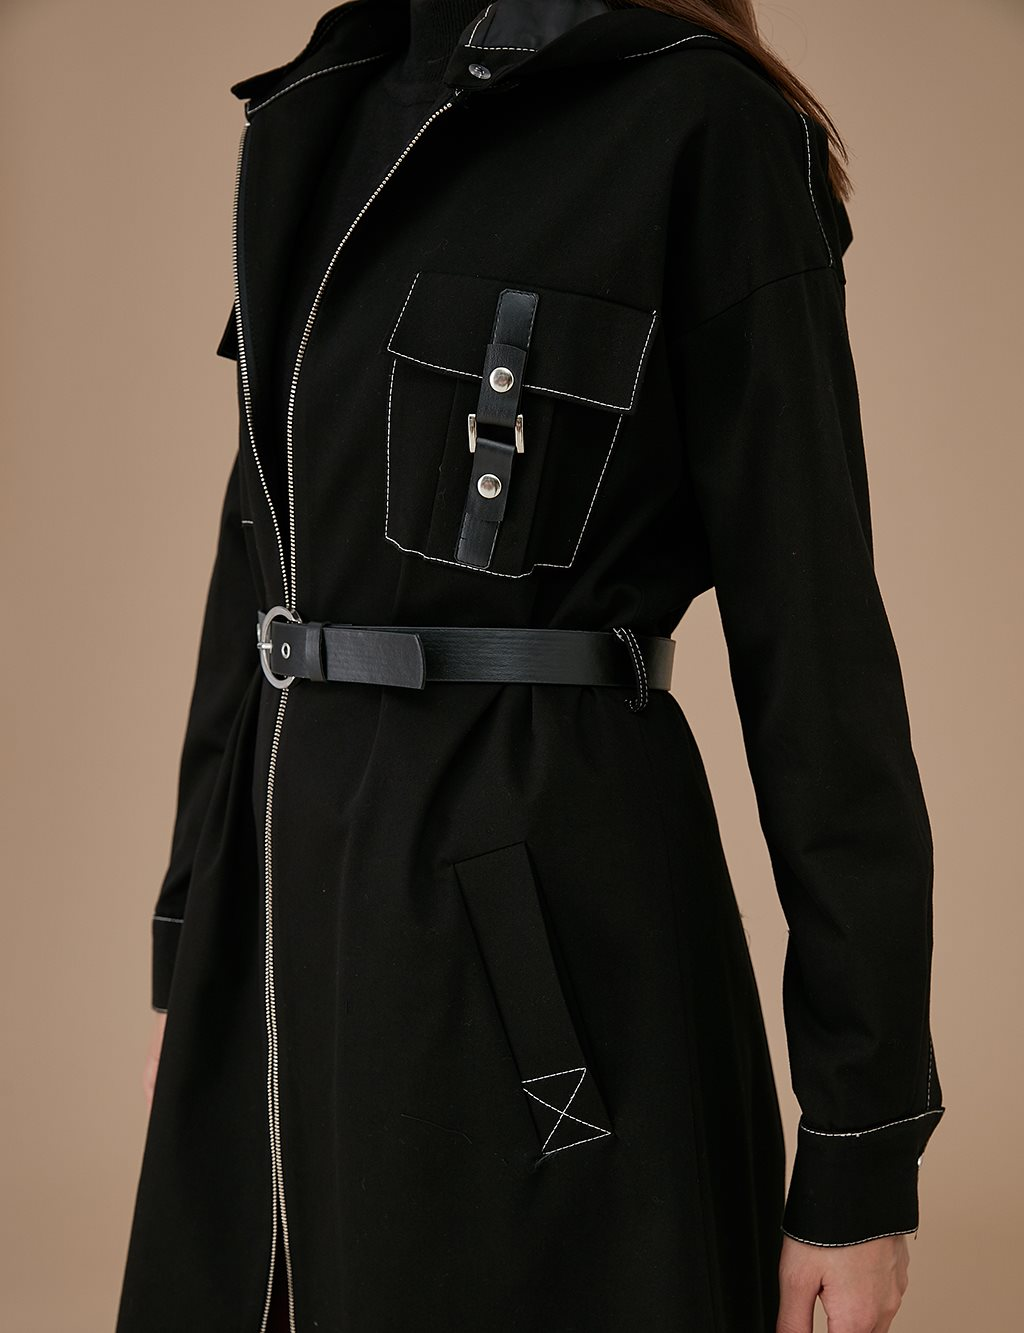 Trenchcoat With Leather Belt A9 14050 Black